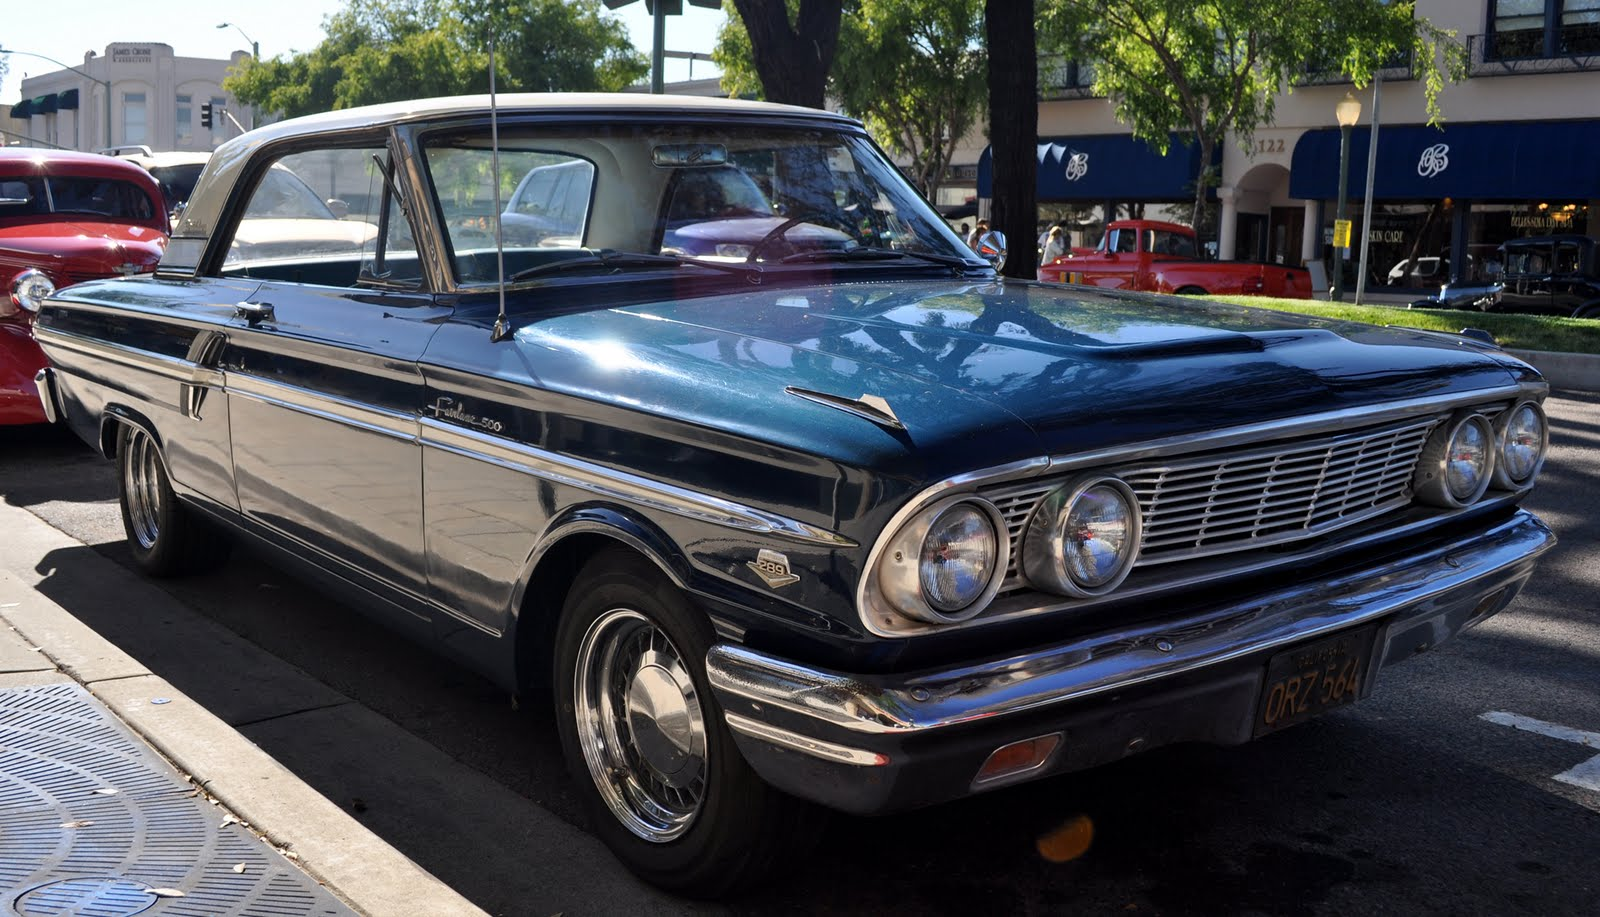 Just A Car Guy 1964 Ford Fairlane 500 Sports Coupe Original Owners Crew Cab Brought It To The Escondido Cruise